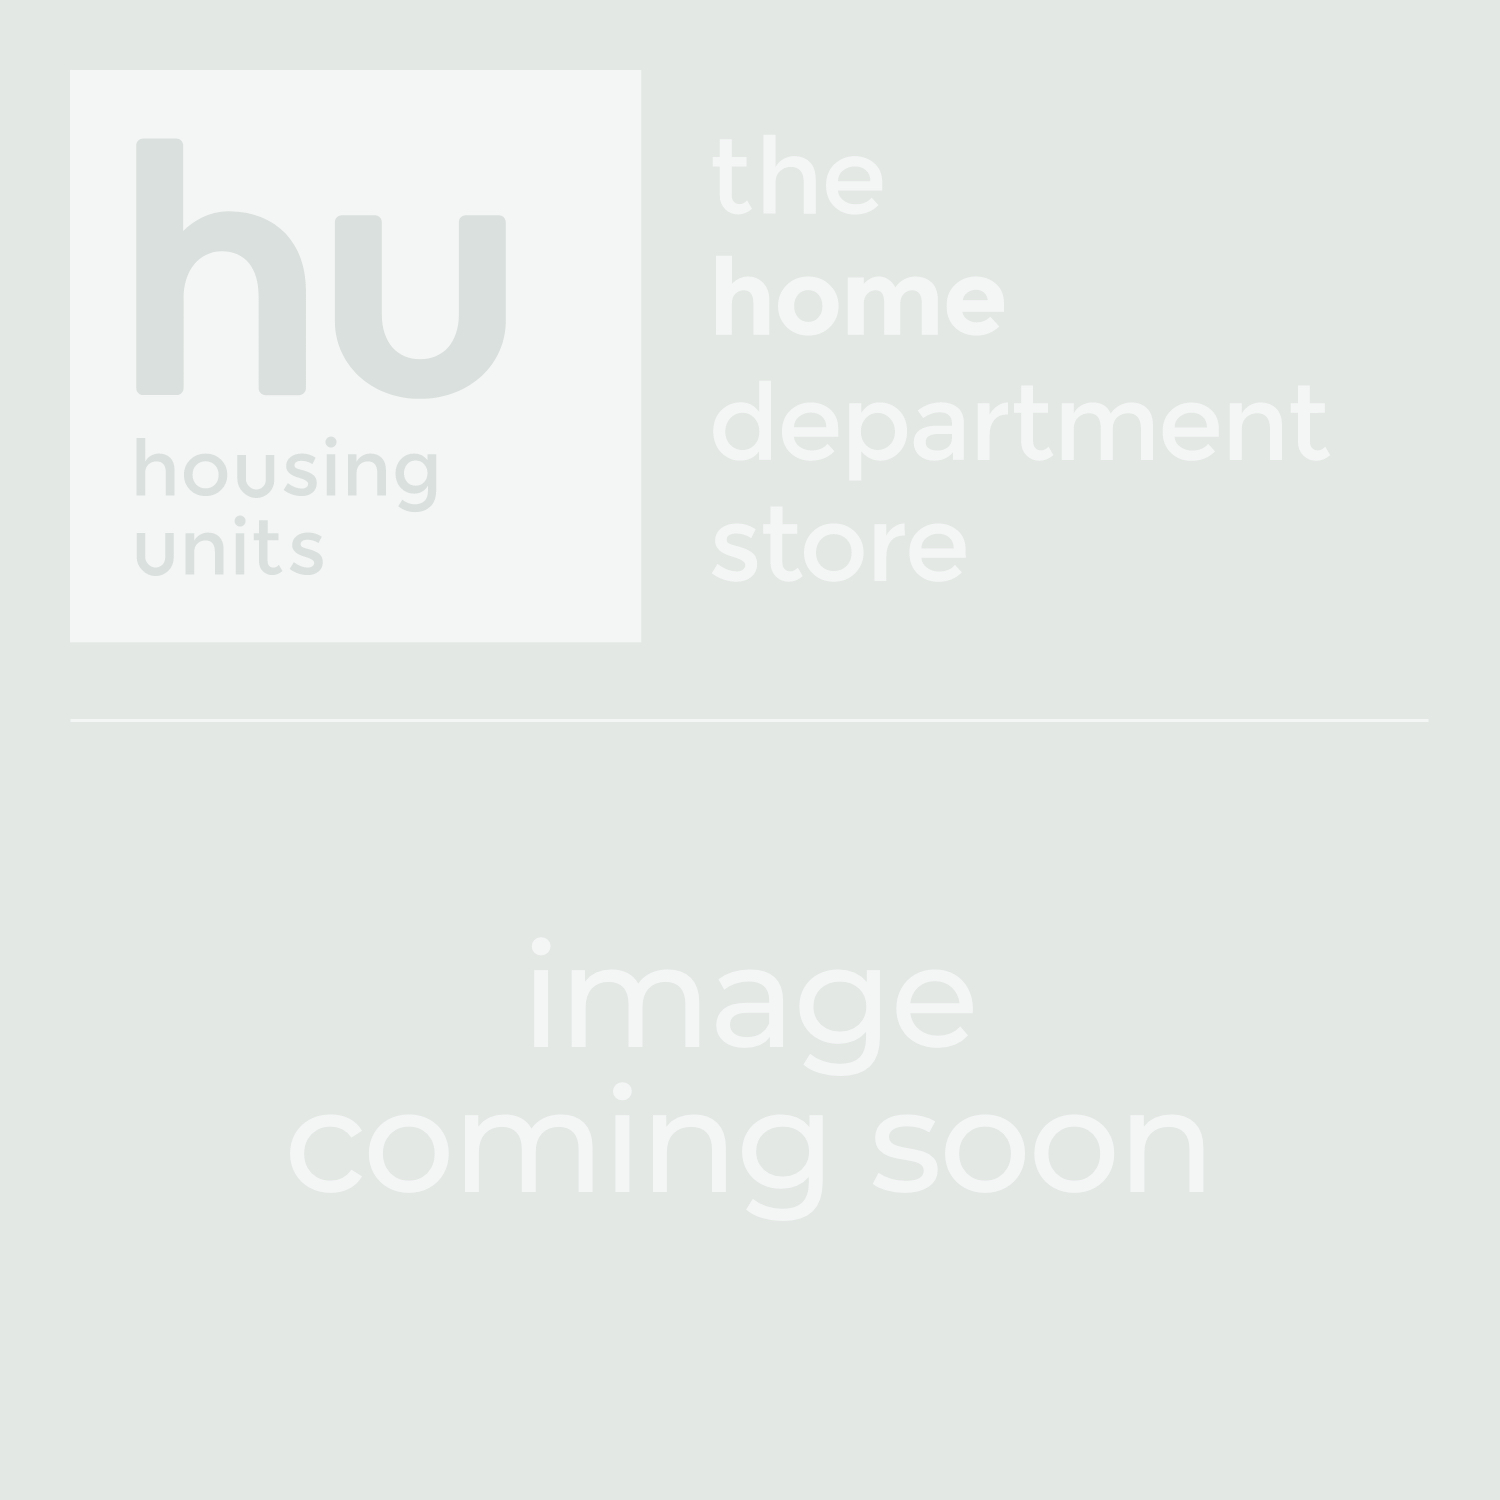 Dualit Classic Copper Steel 4 Slice Toaster | Housing Units